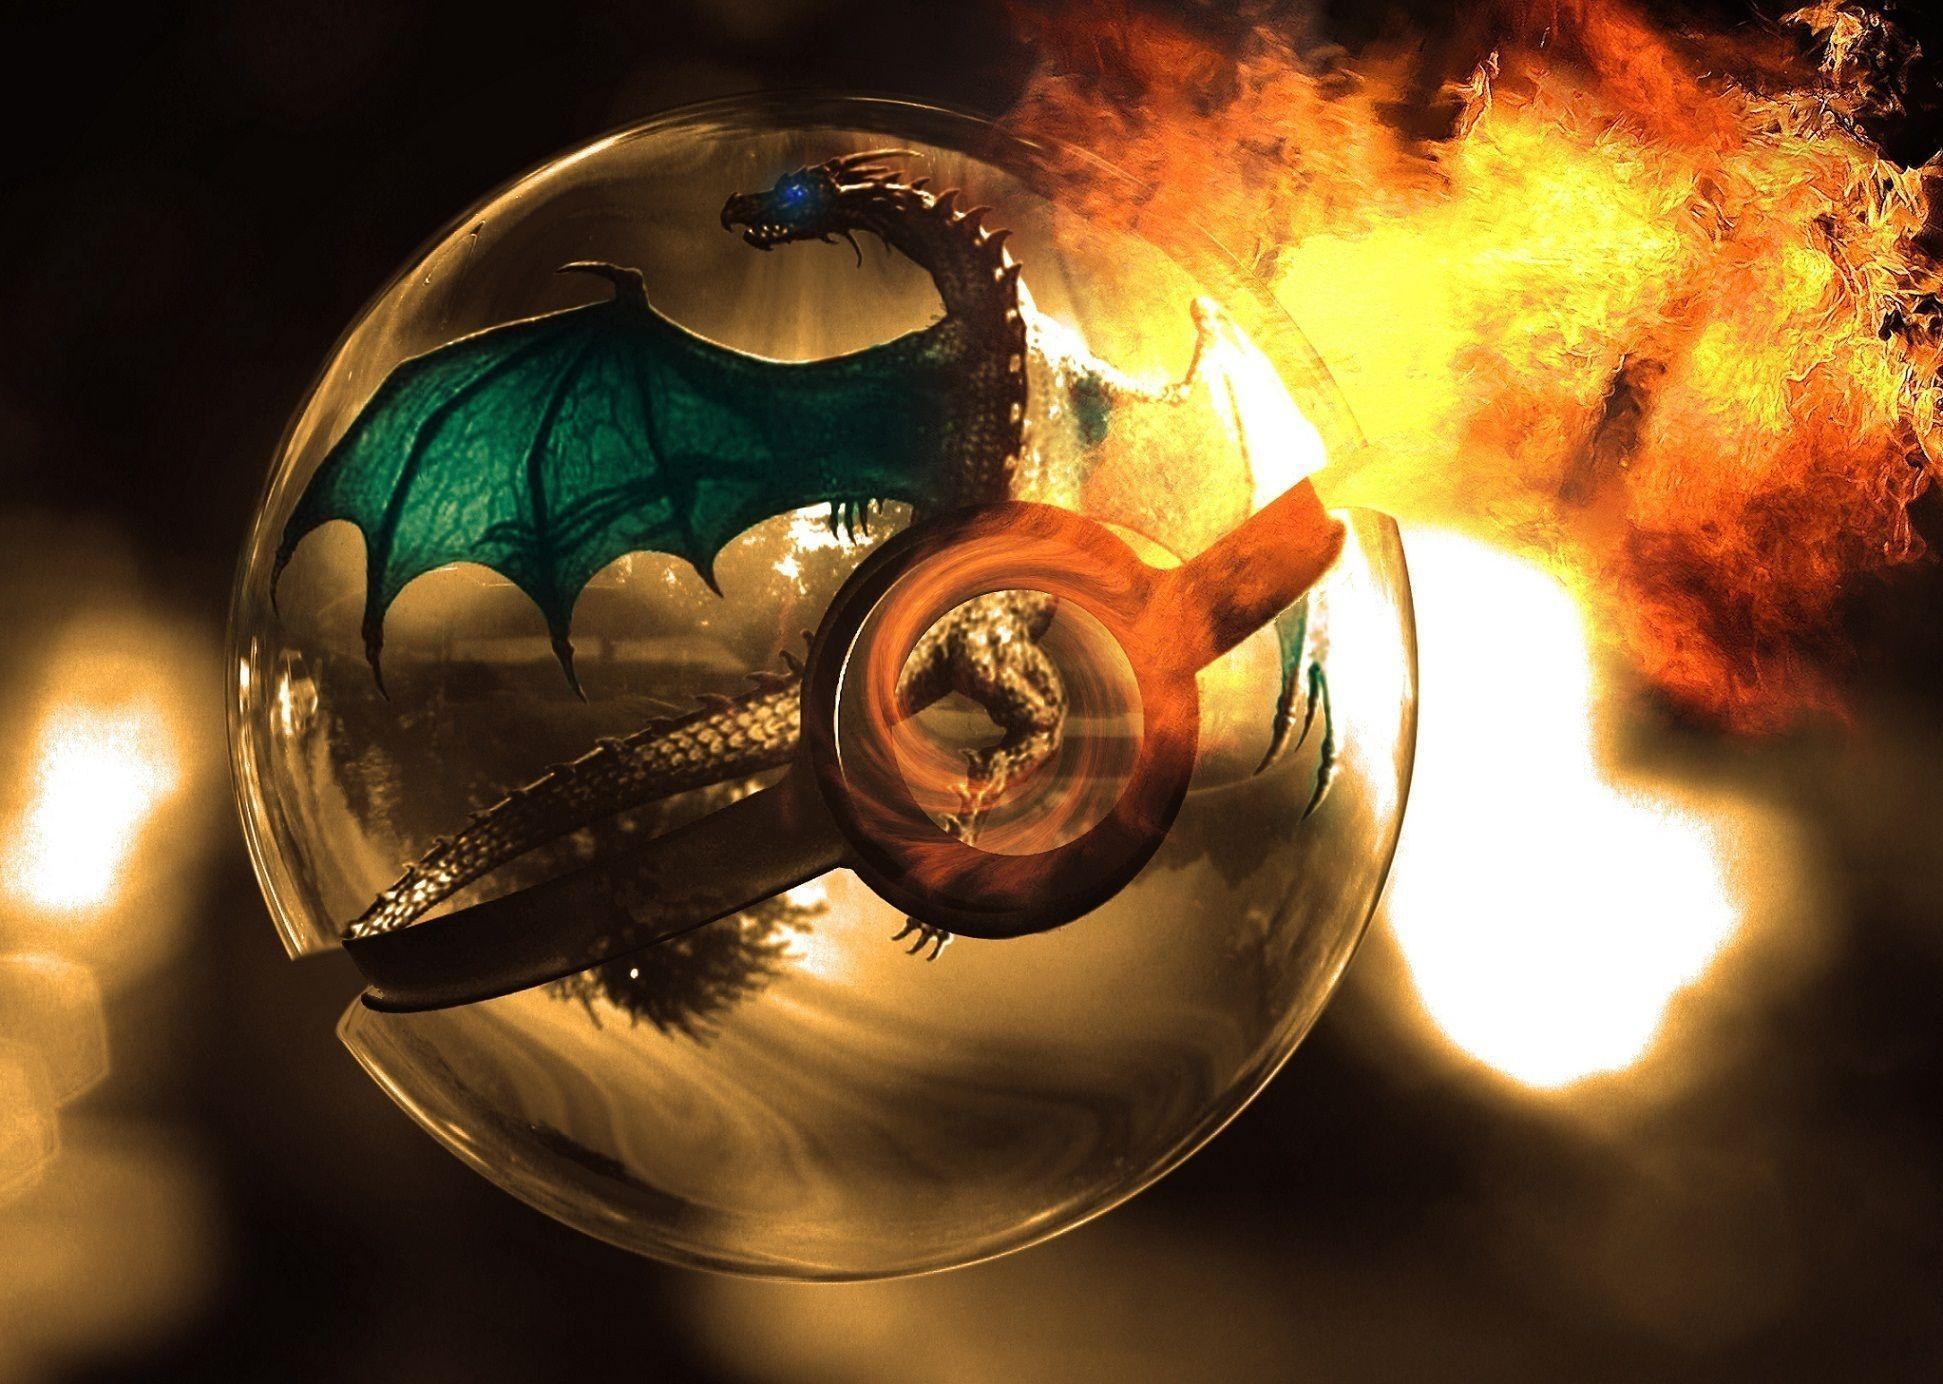 92 Charizard (Pokémon) HD Wallpapers | Background Images ...